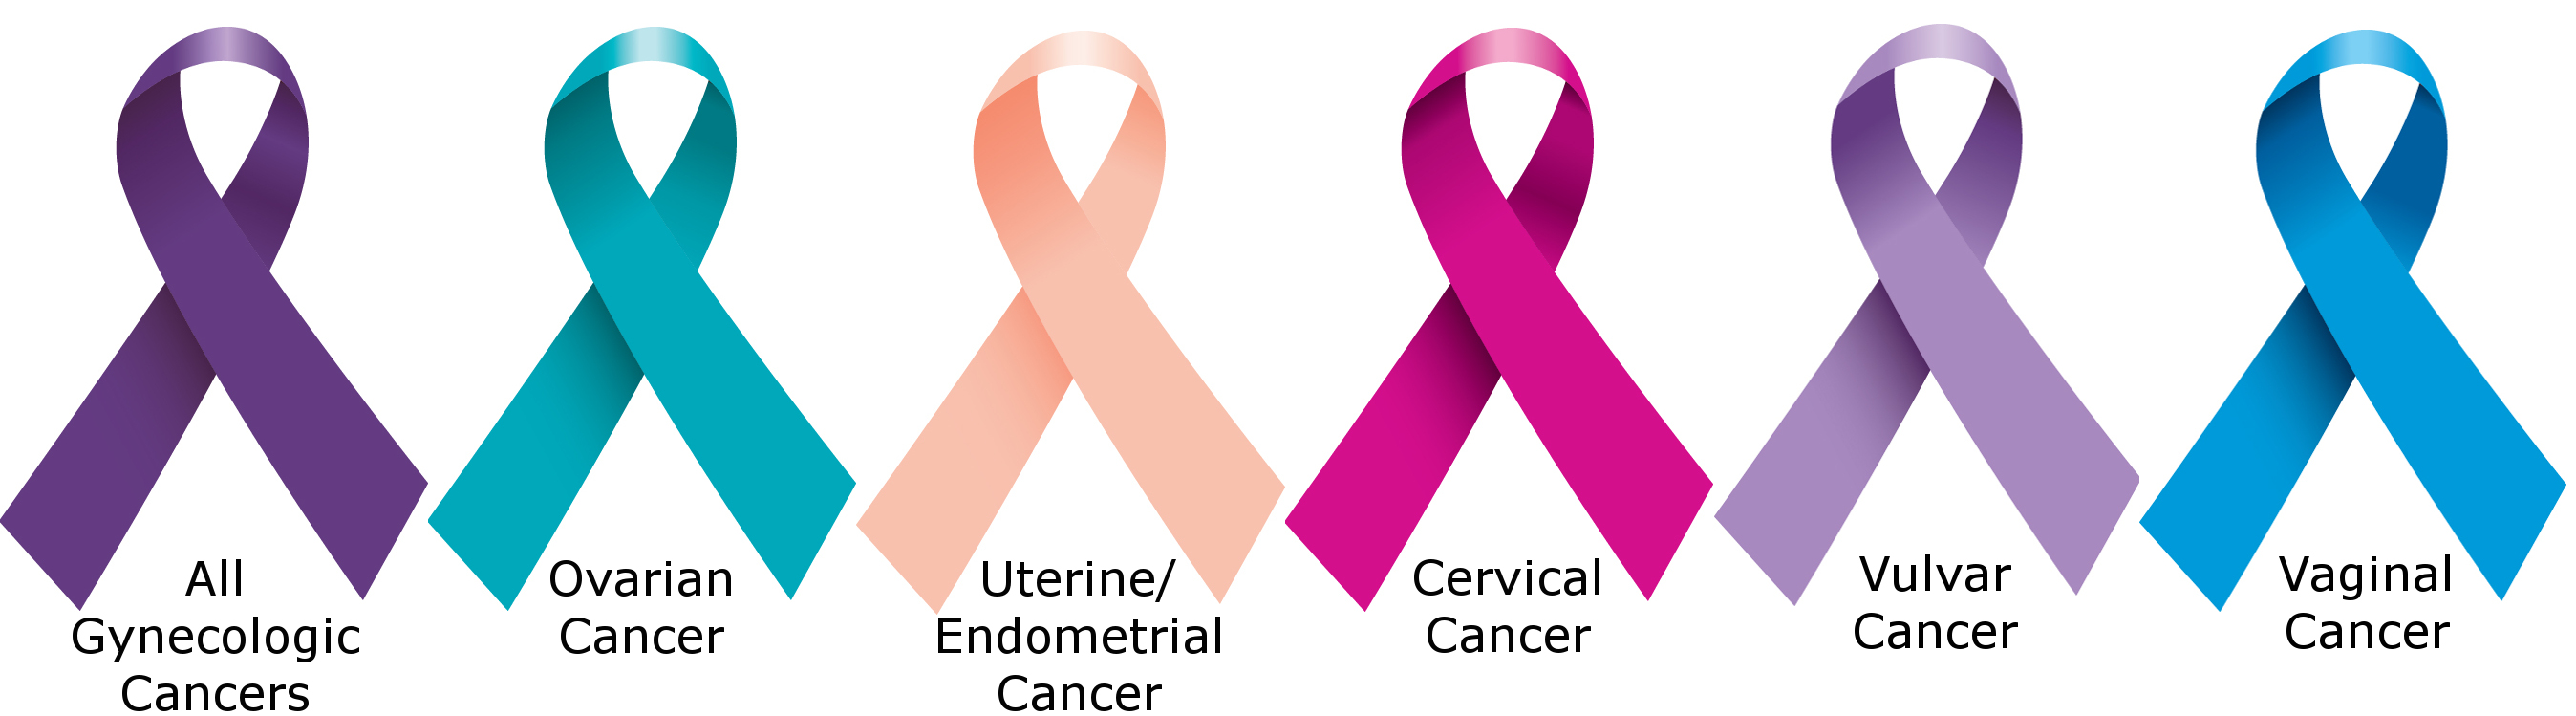 september gynaecological cancer awareness month my gynae